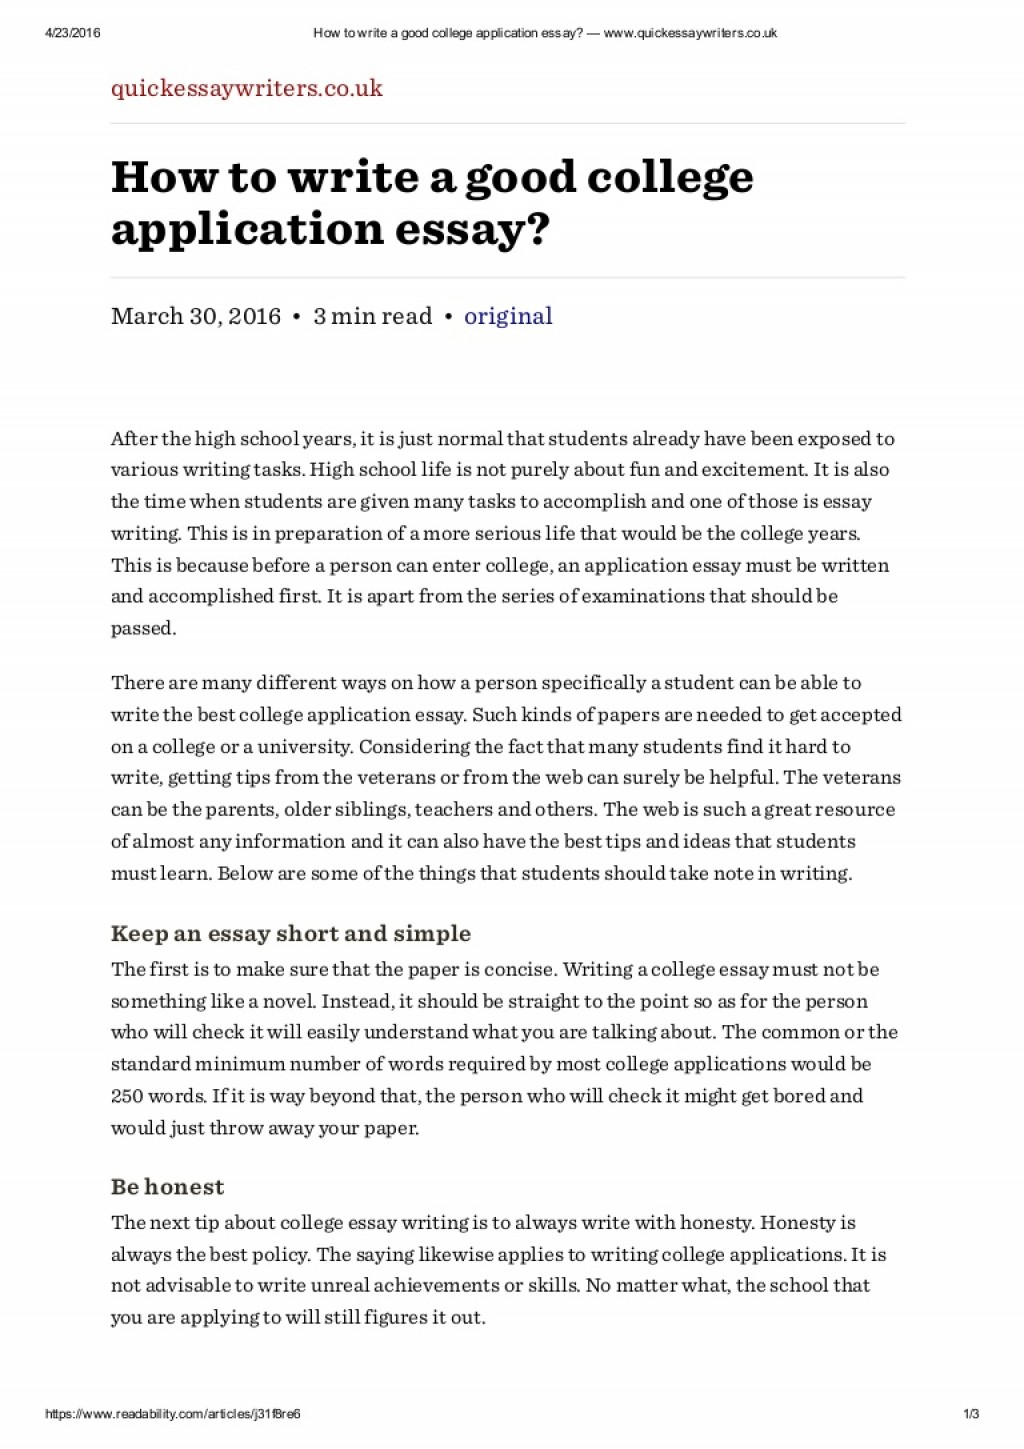 009 Essay Example College Application Howtowriteagoodcollegeapplicationessaywww Thumbnail Unbelievable Template Admission Topics To Avoid Help Large